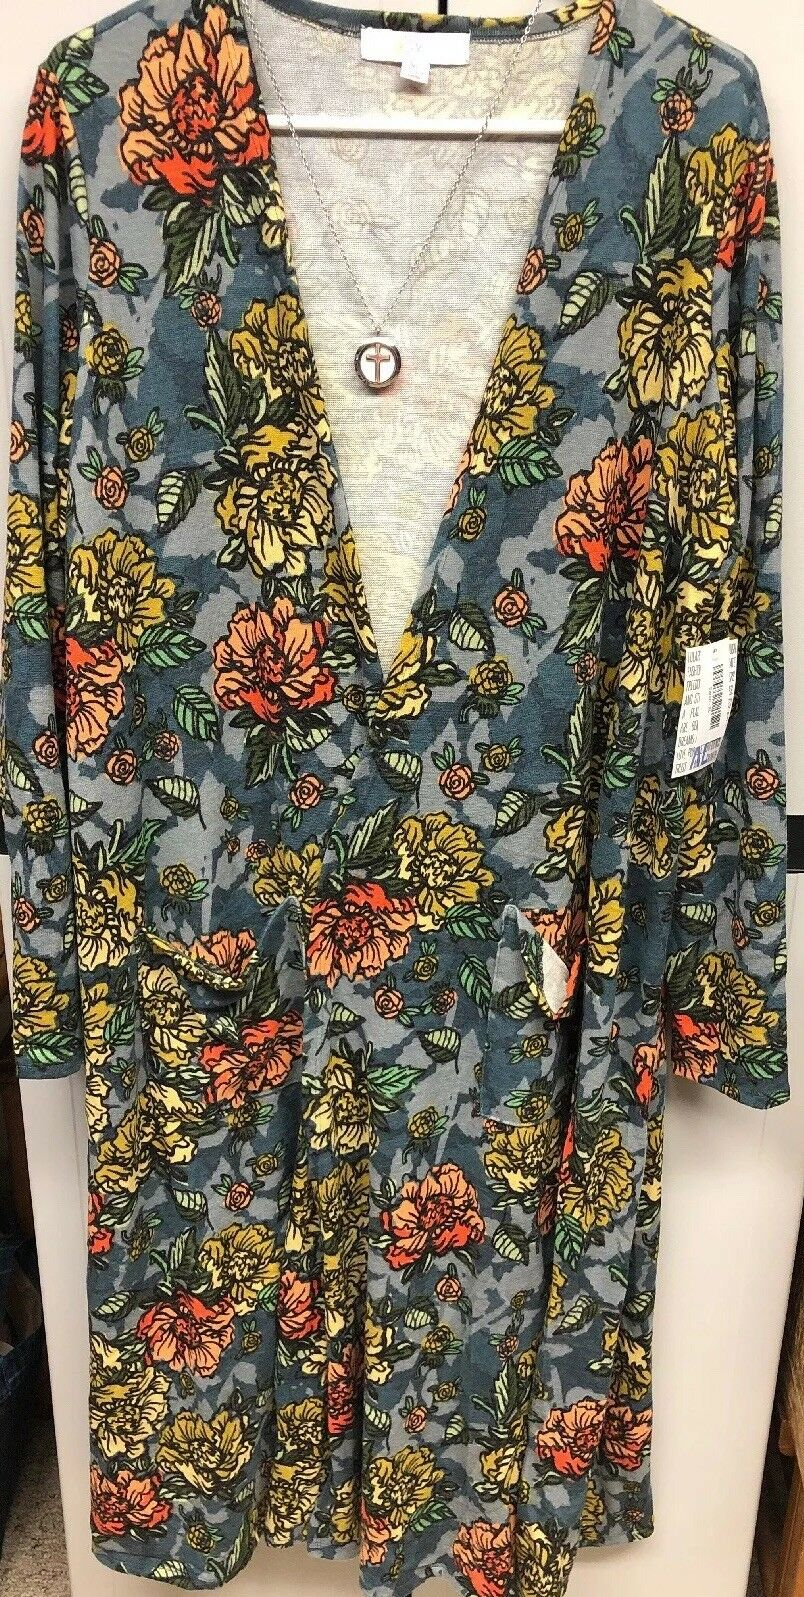 NWT LuLaRoe XL Sarah Cardigan Duster Sweater Slate bluee Coral gold Peach Floral